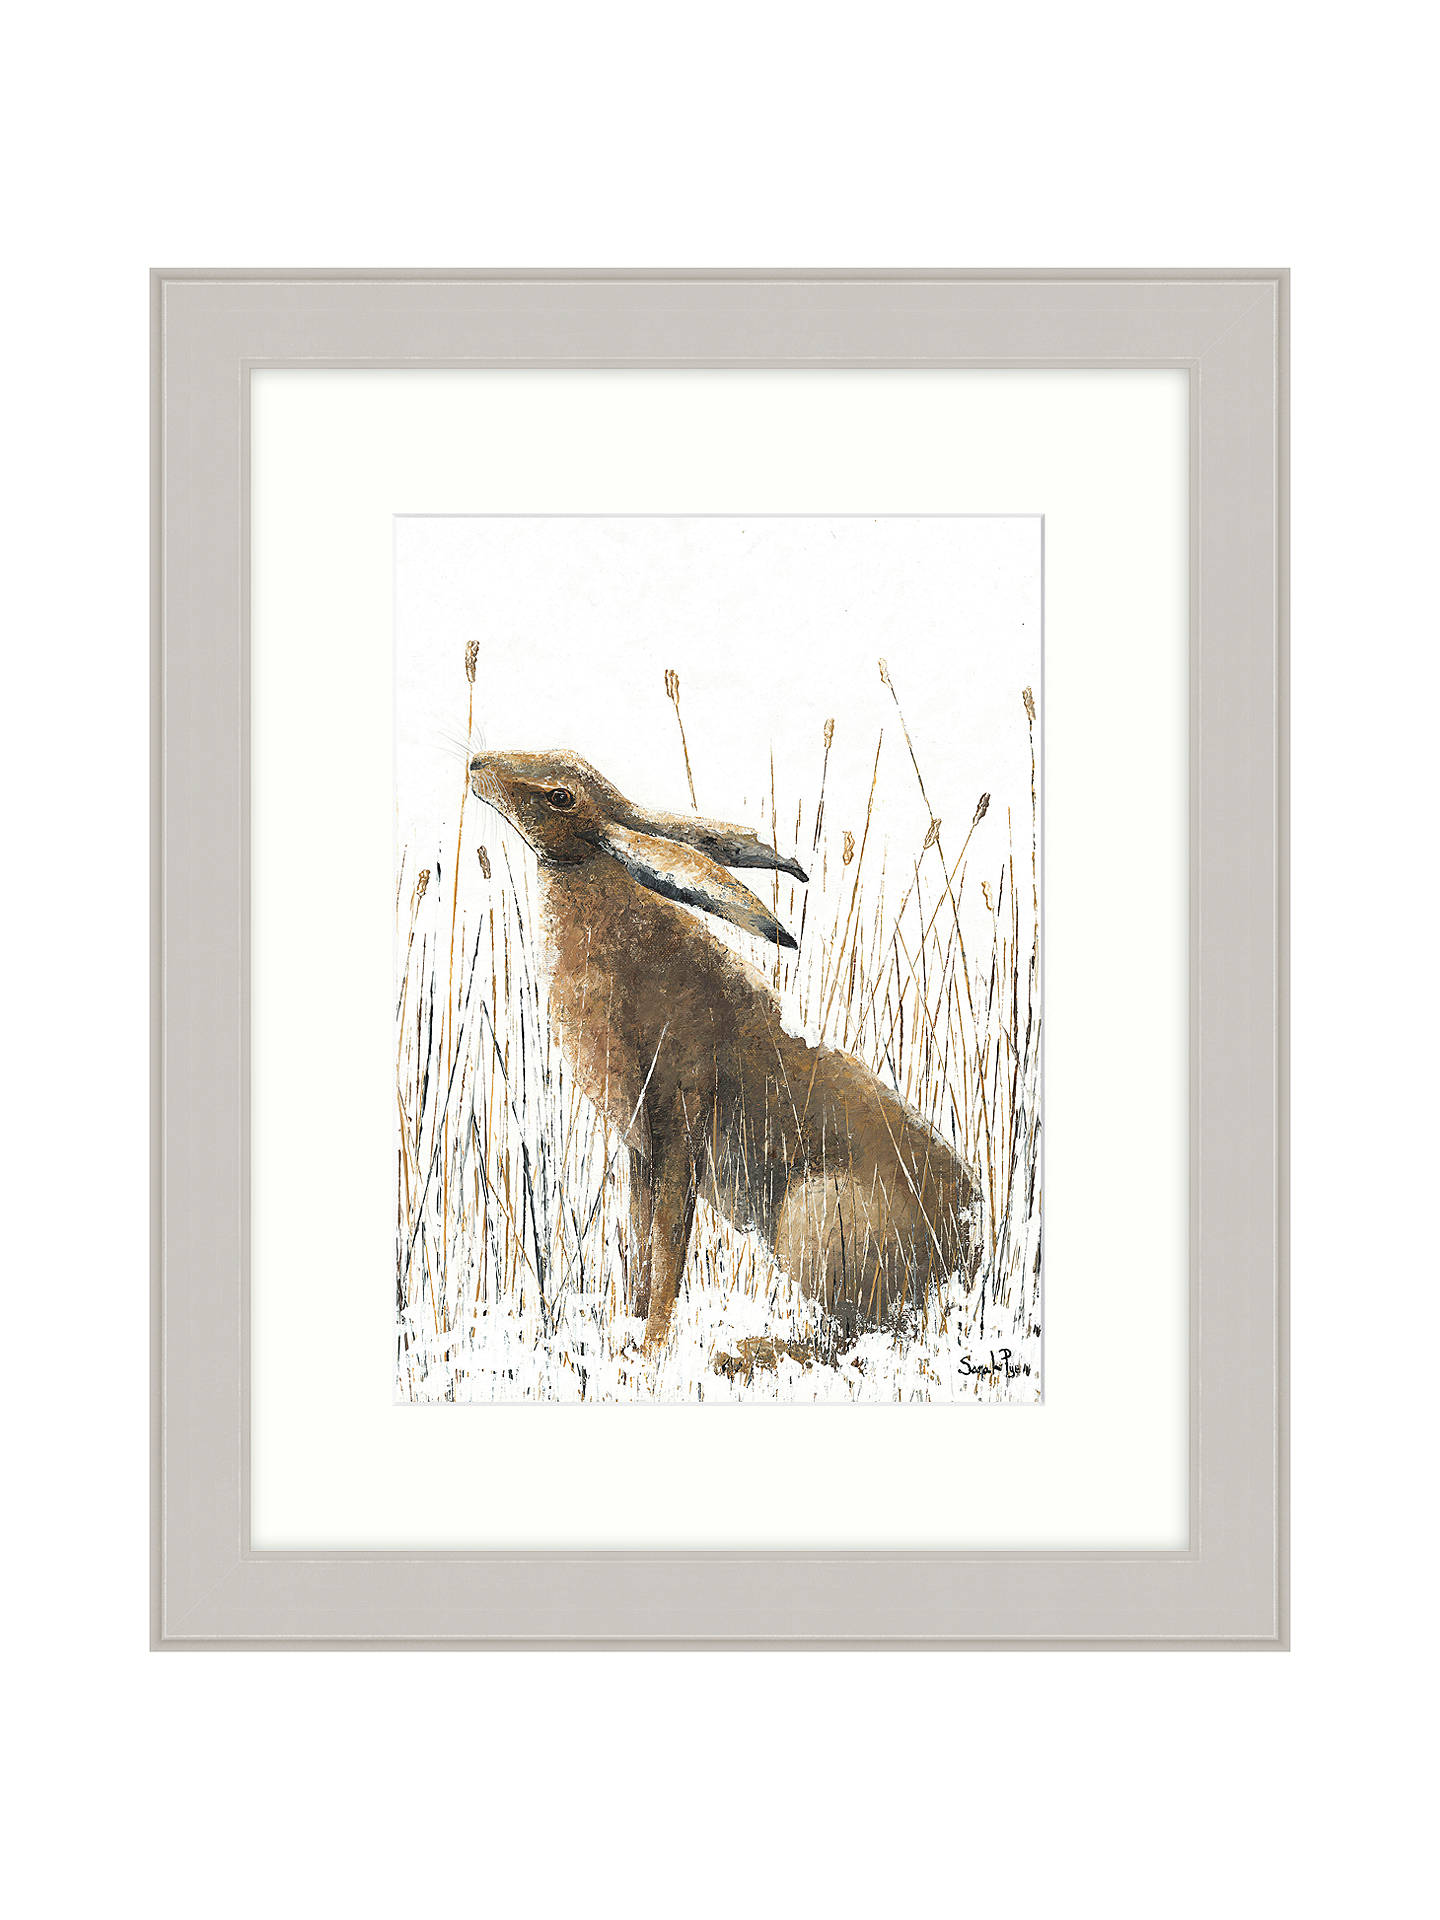 BuySarah Pye - A Quick Nibble Framed Print, 67 x 57cm Online at johnlewis.com